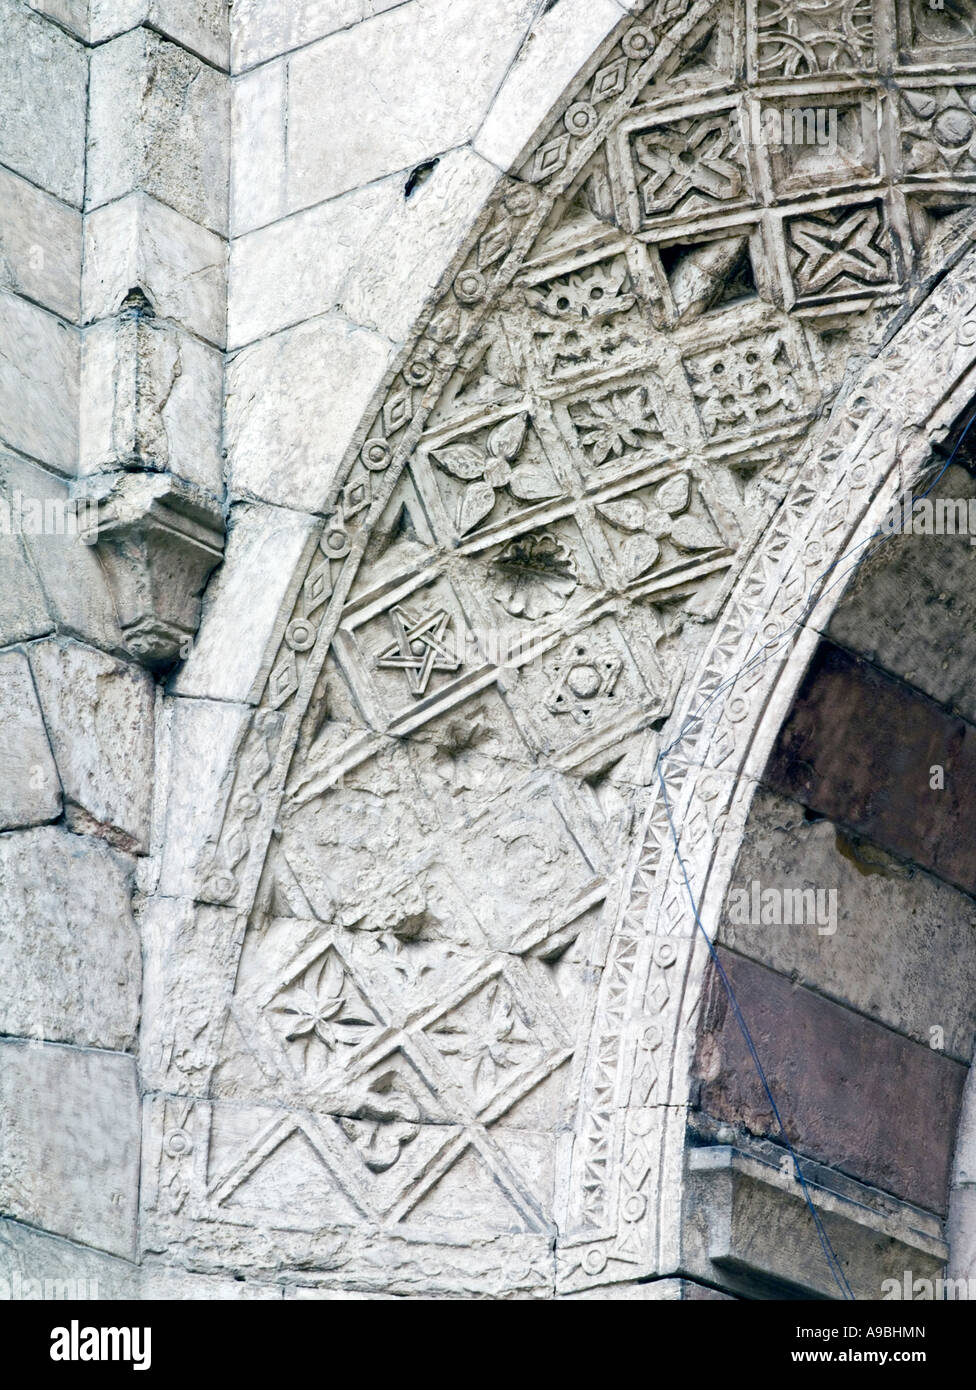 detail of carving on arch above entrance, Bab al-Futuh, Cairo, Egypt - Stock Image